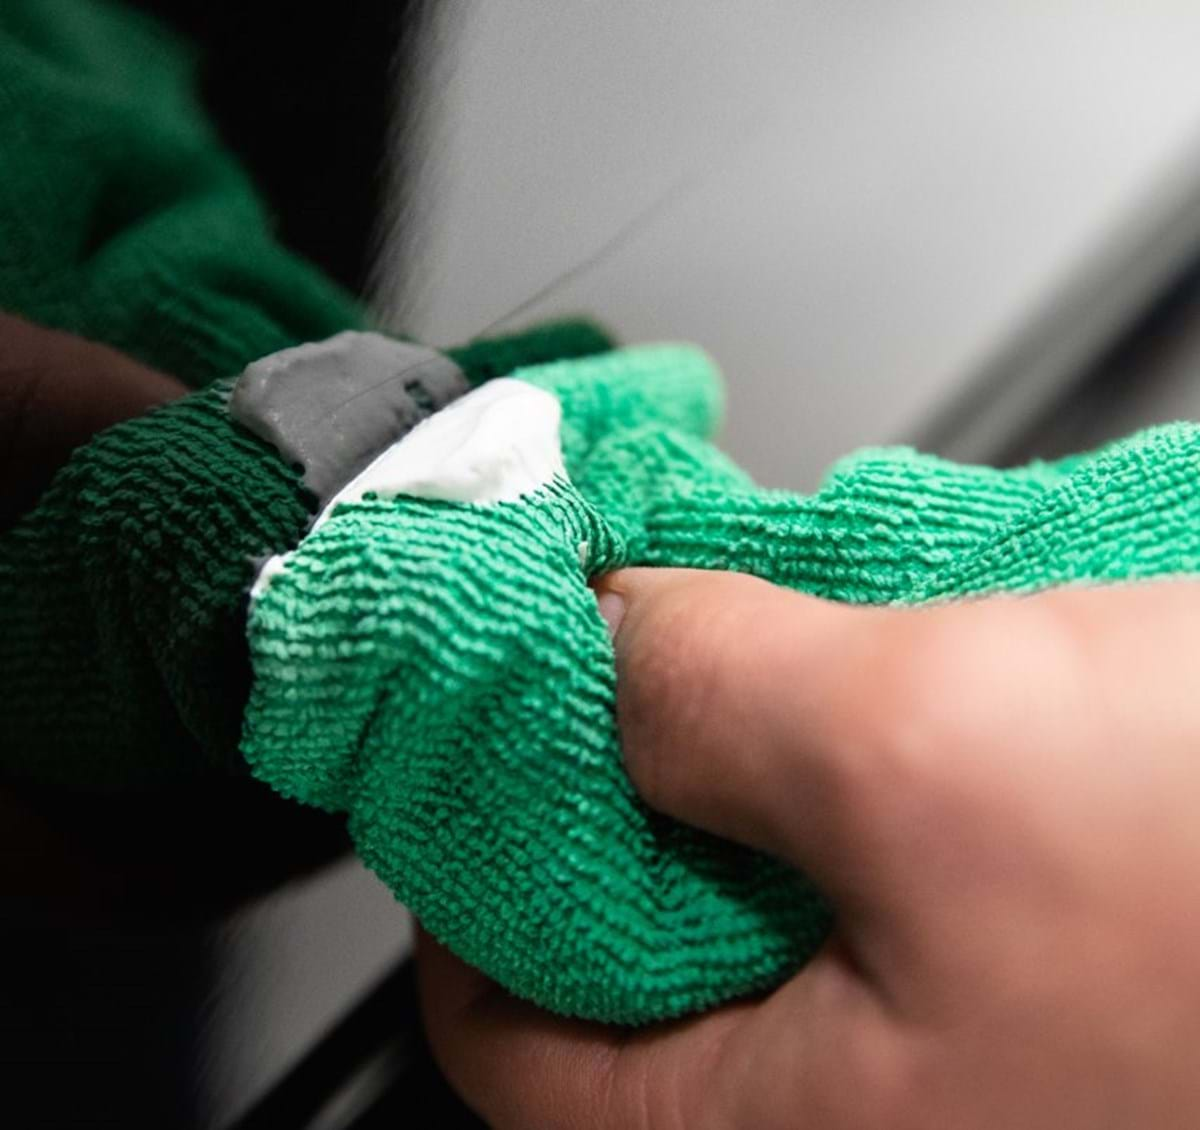 turtle wax scratch repair and renew being applied with a green microfiber cloth on a scratched black car paint